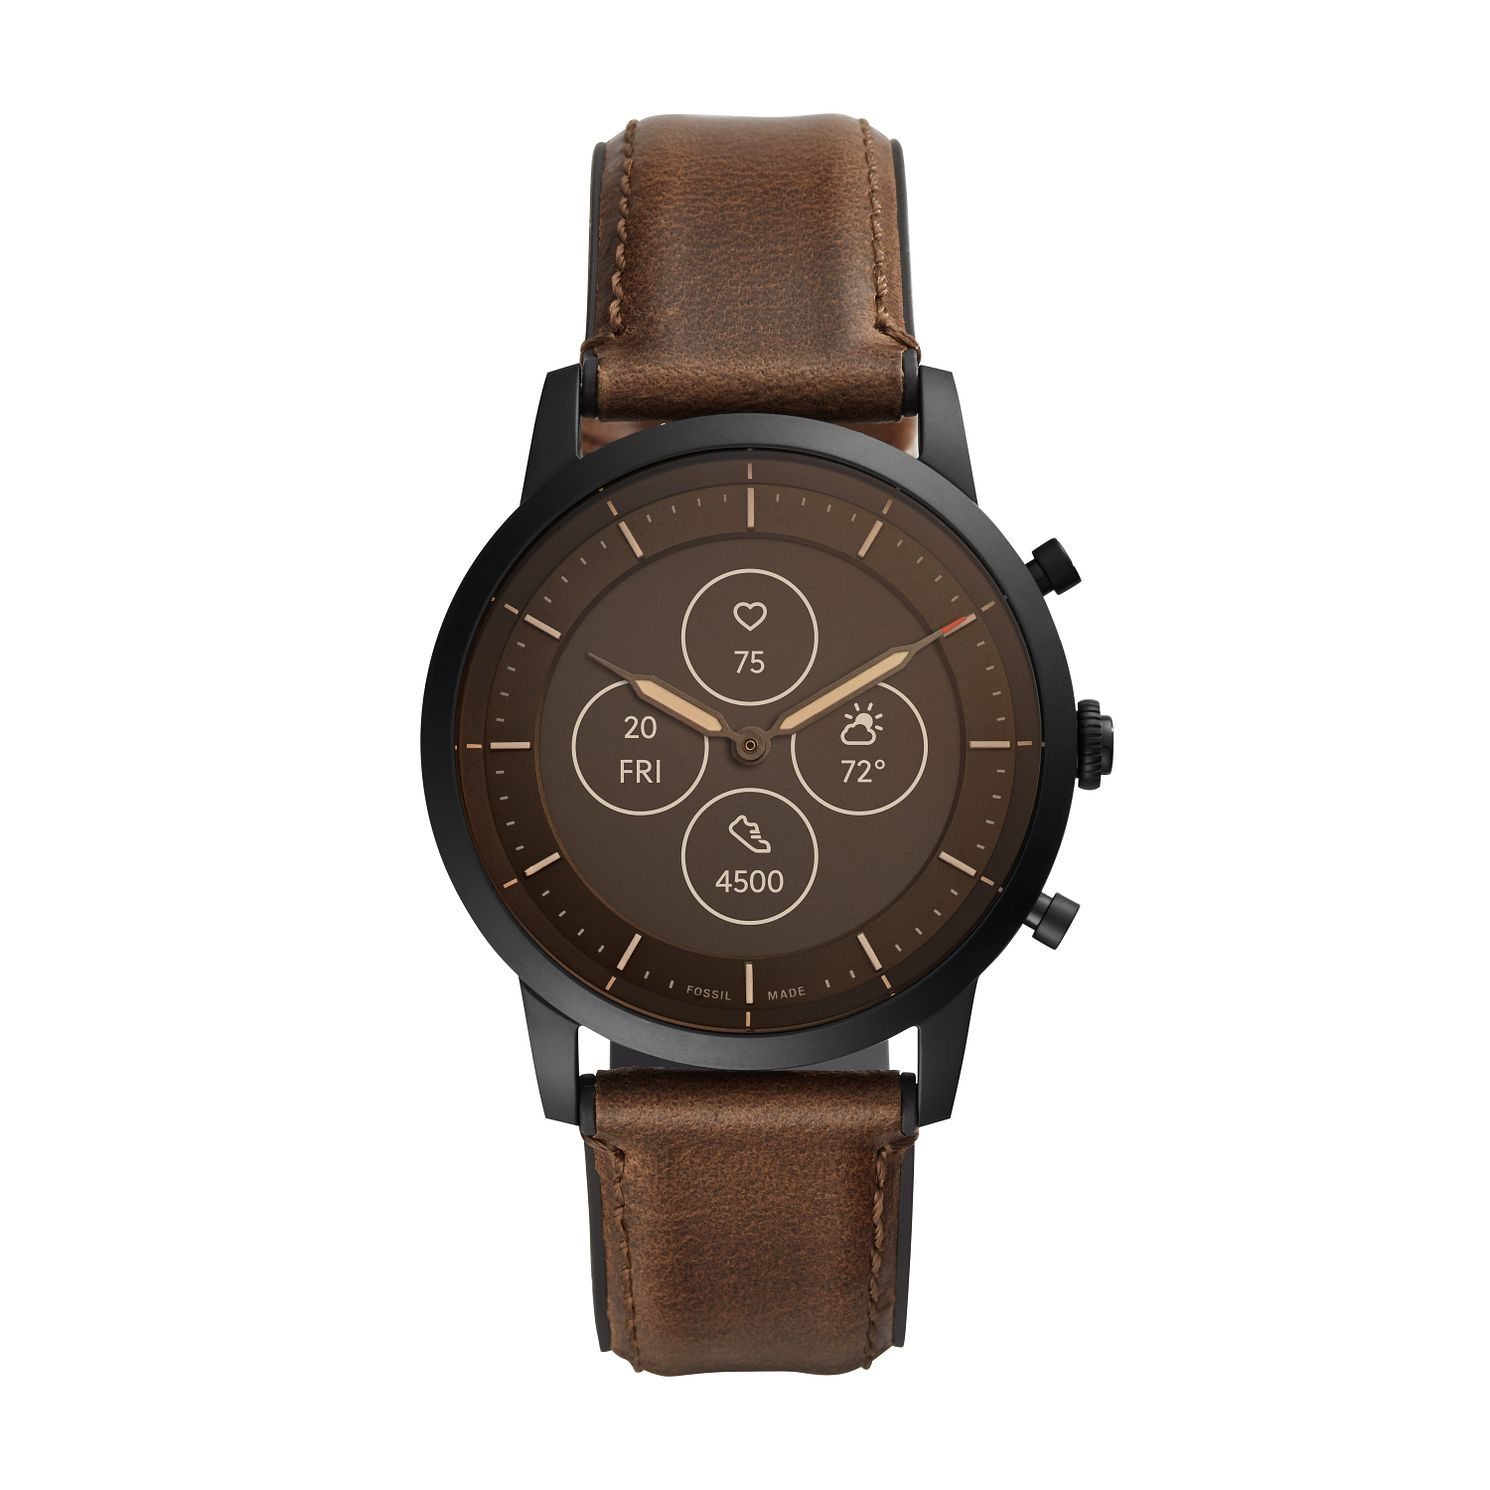 Fossil Smartwatches Collider HR Brown Leather Strap Watch - Product number 4899377